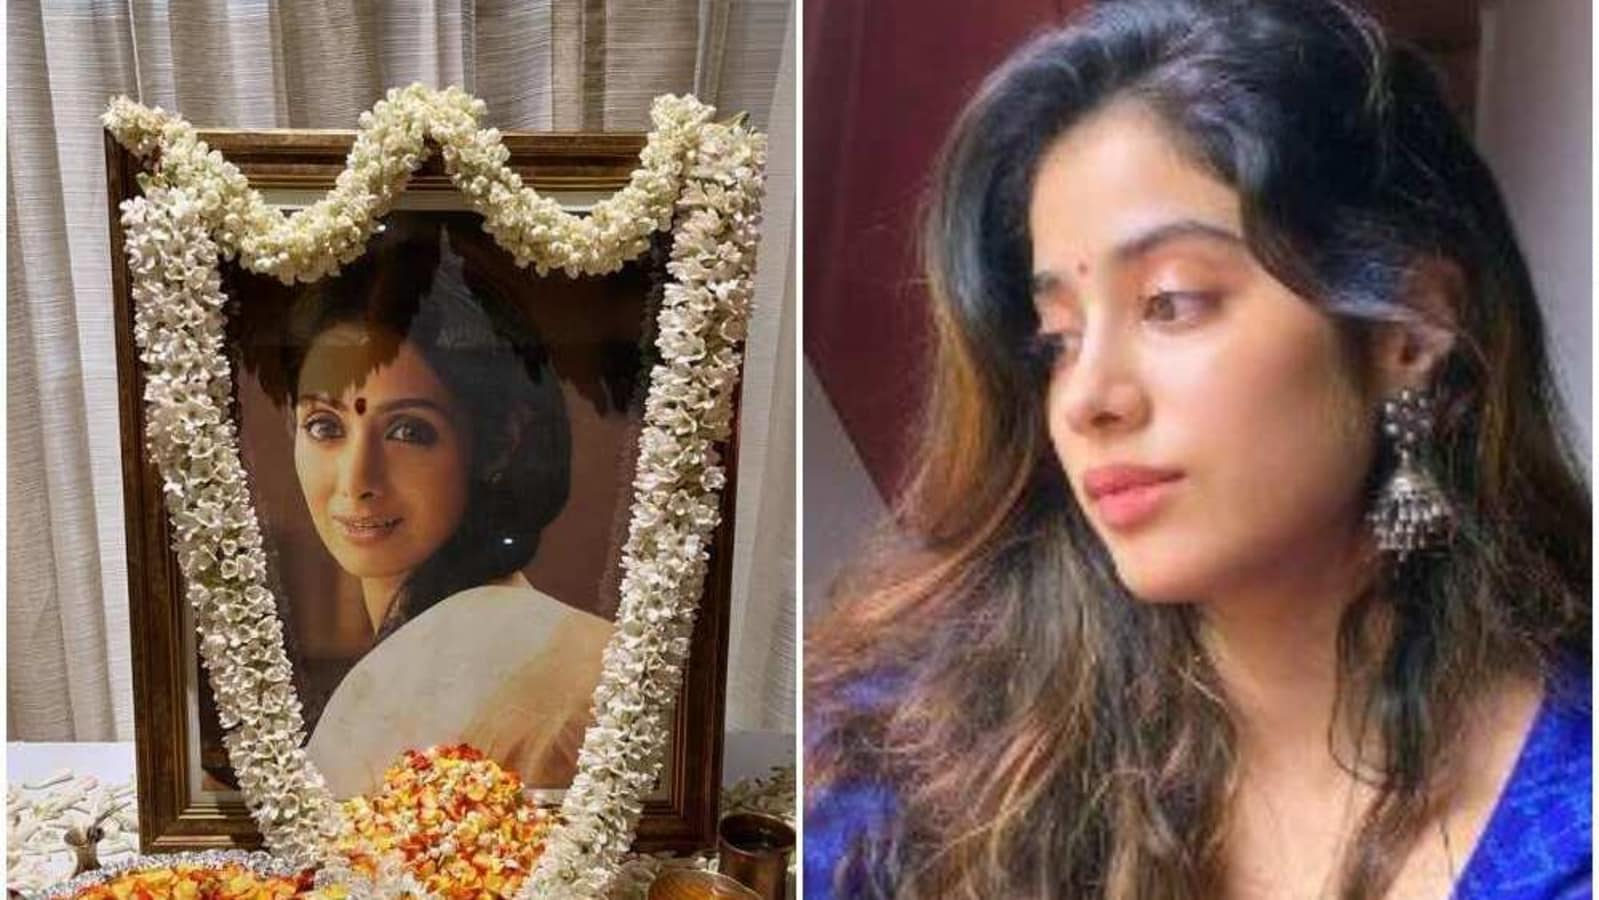 Janhvi Kapoor shares handwritten note on Sridevi's third death anniversary: 'You are the best baby in the world' - Hindustan Times